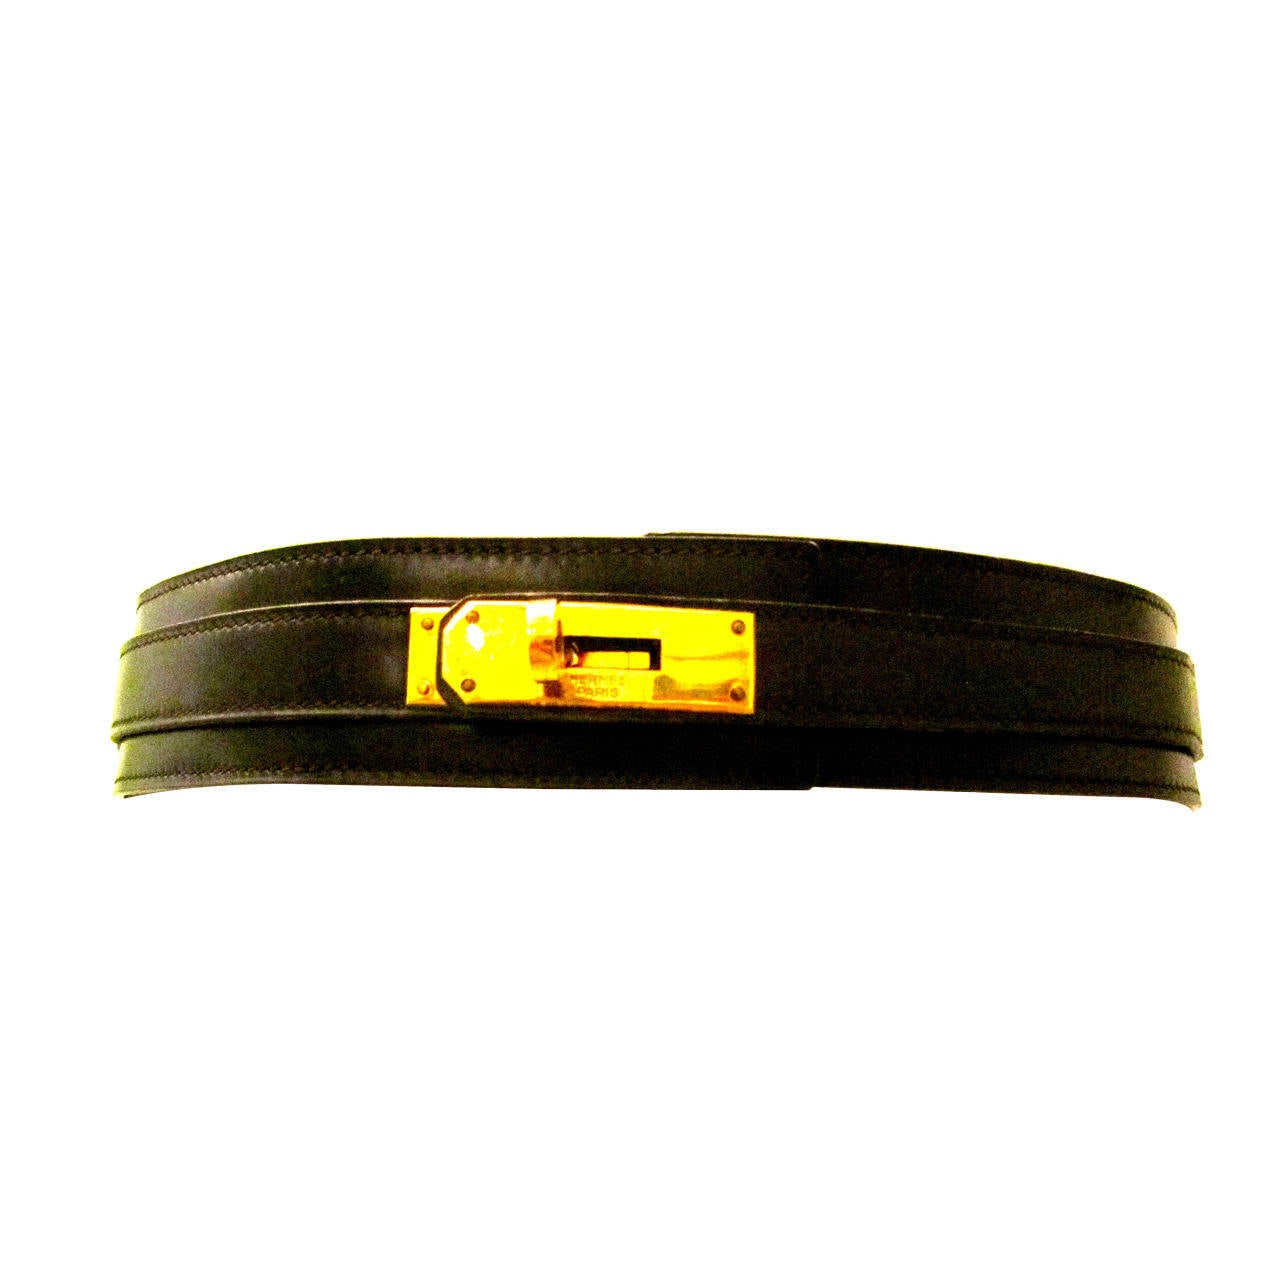 Hermes Brown x Black Leather x Silver Tone H Buckle Belt Size 65